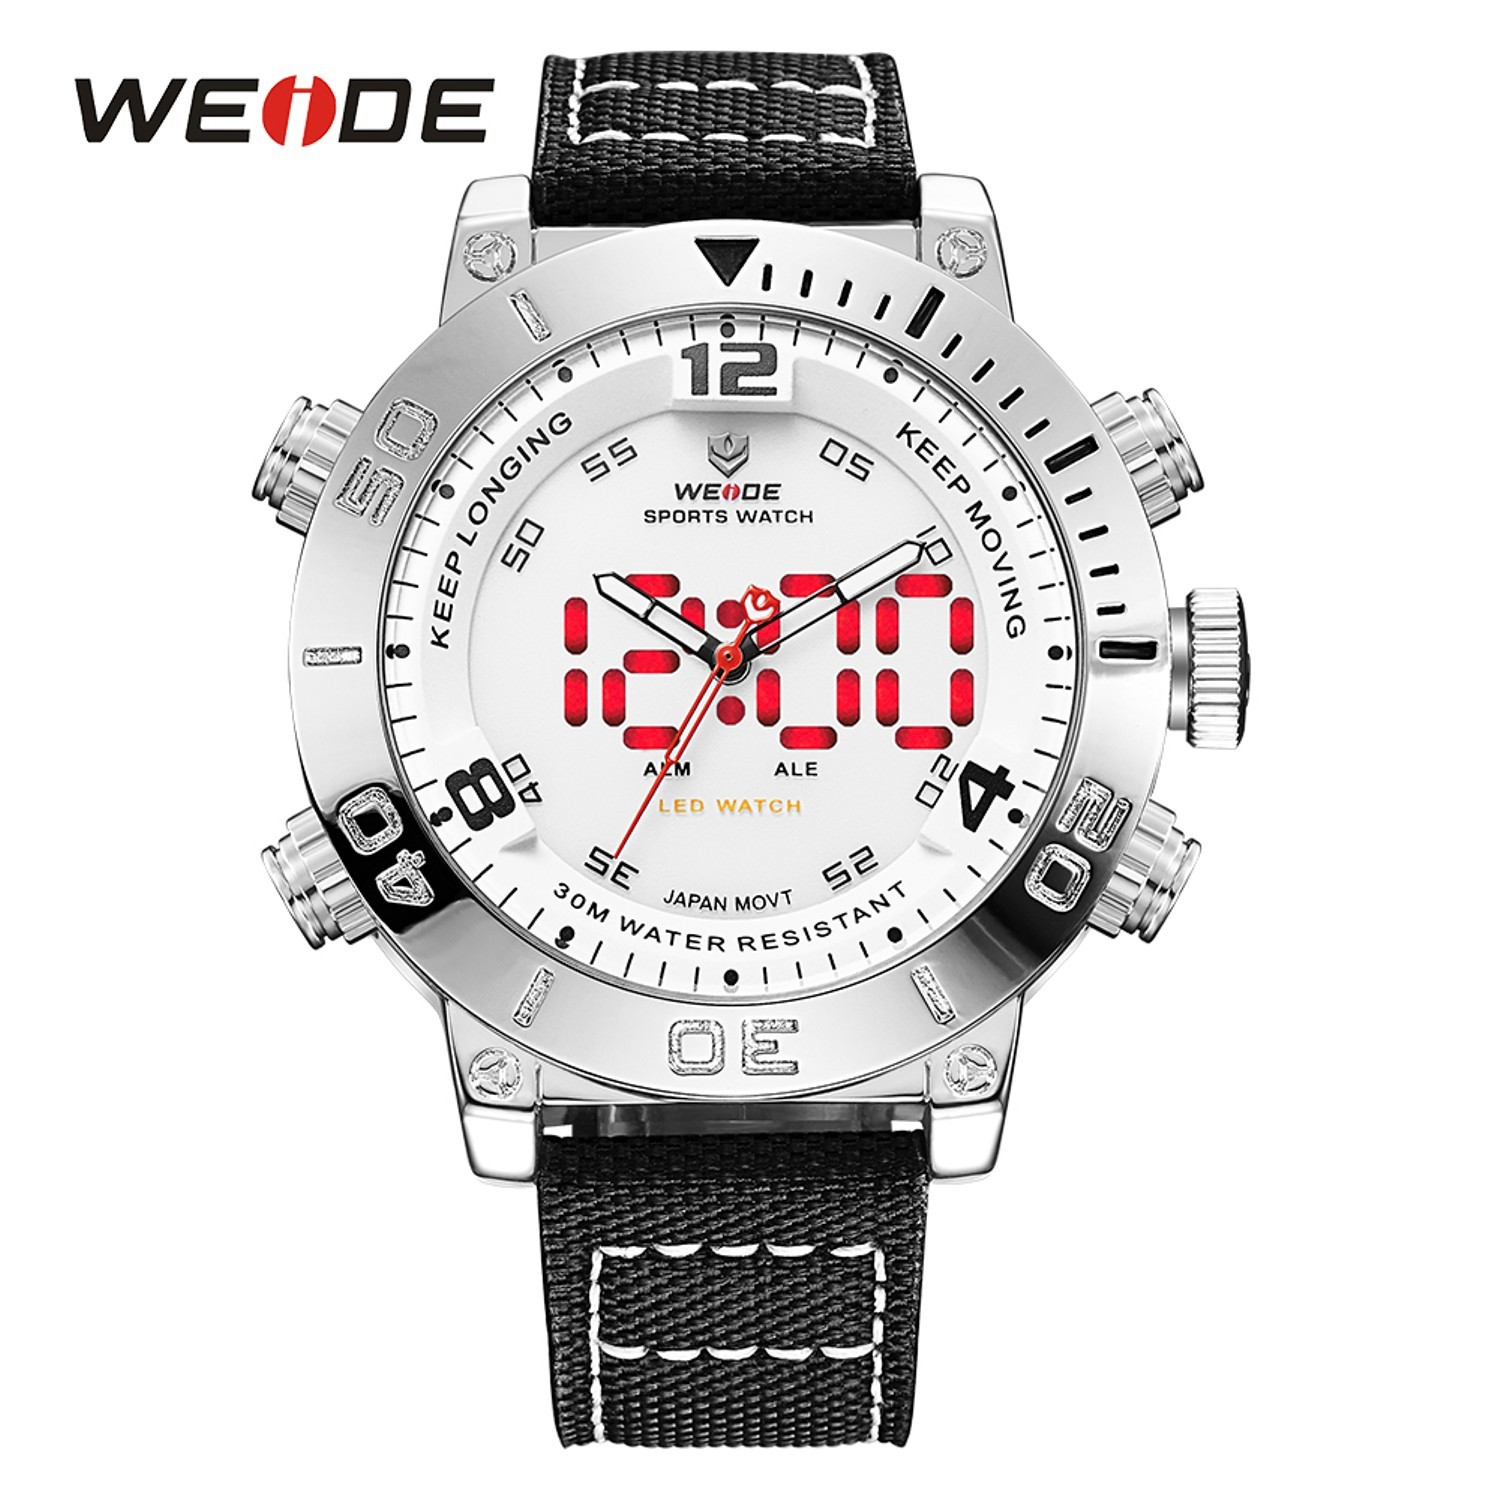 WEIDE-Watch-Men-Nylon-Band-Strap-Quartz-Watch-White-Digital-LED-Analog-Date-Back-Light-Outdoor_1500x1500_STRETCH_480.jpg